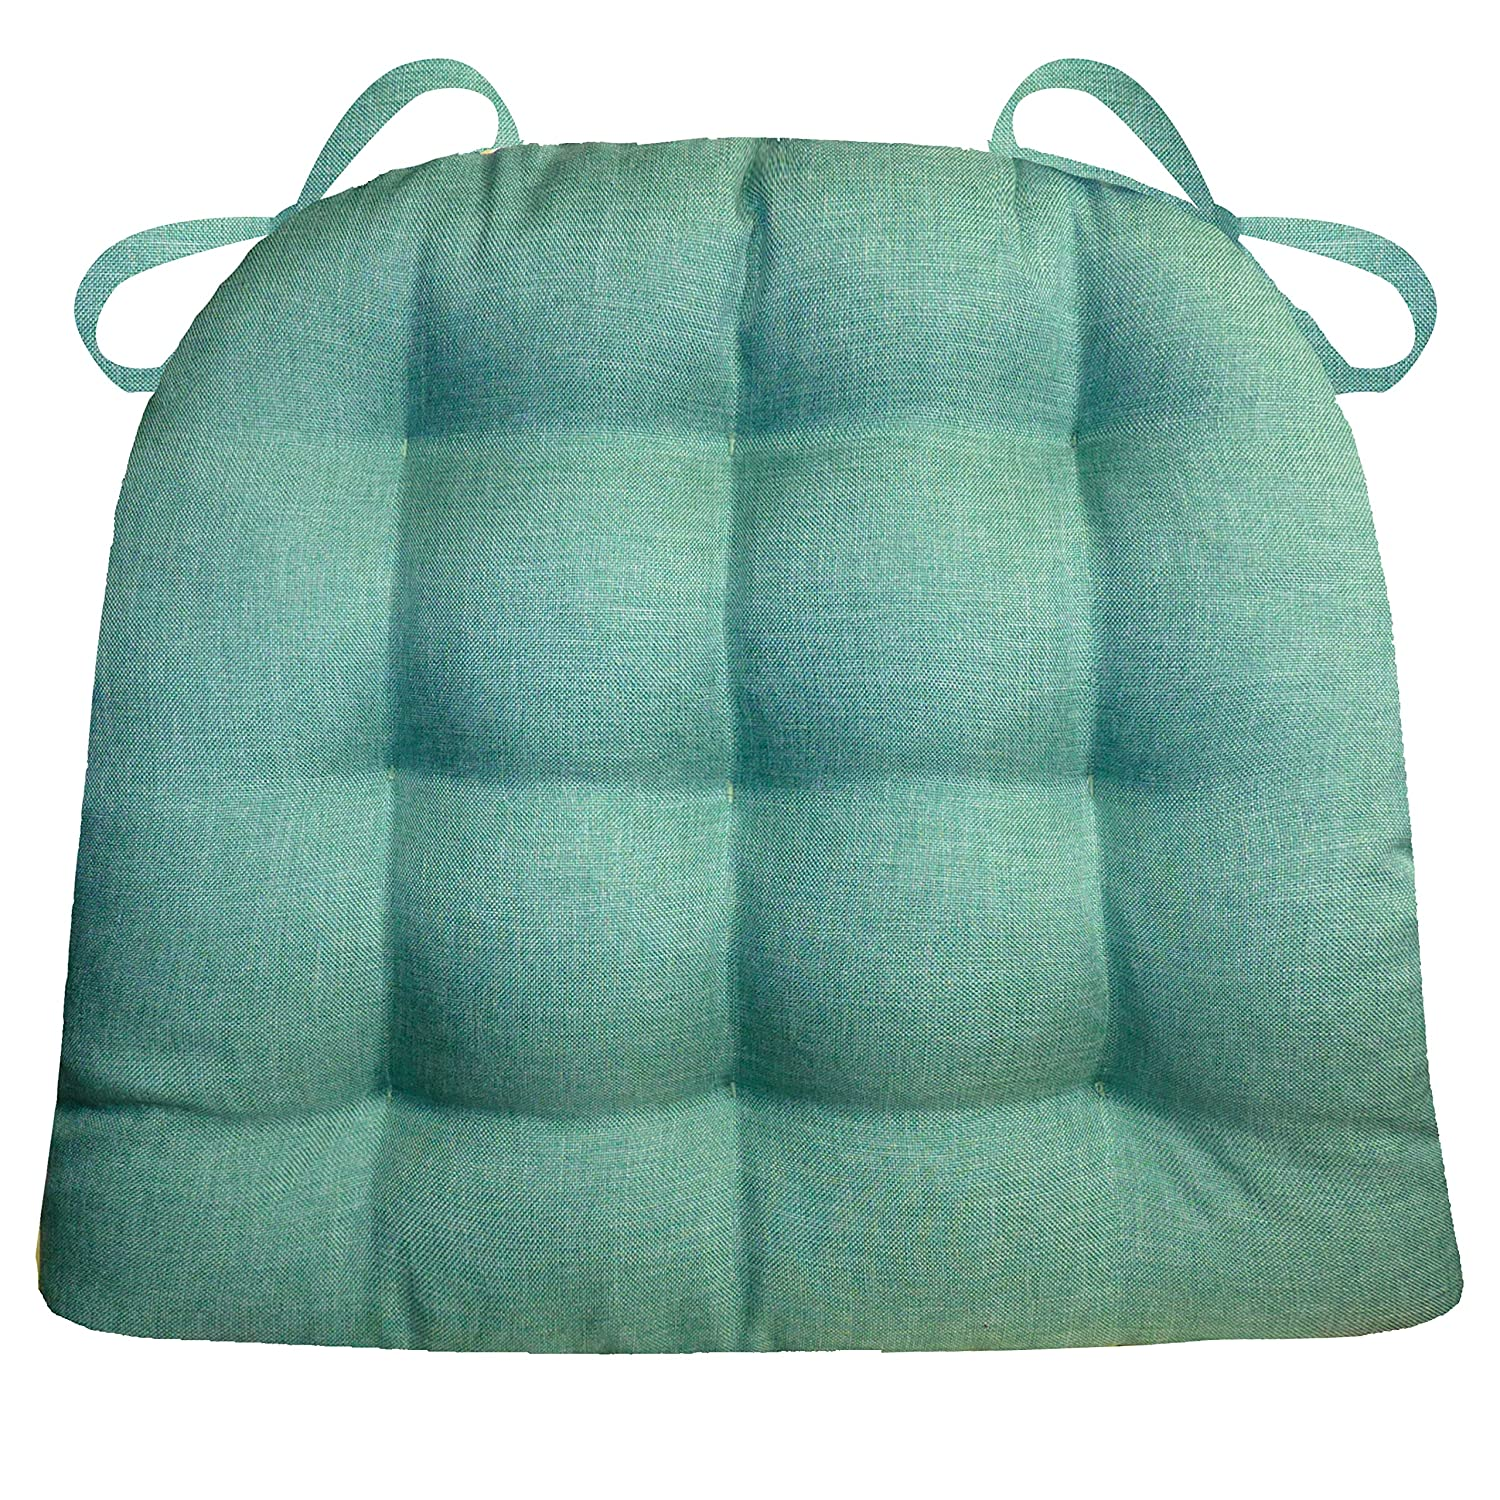 Barnett Products Dining Chair Pad with Ties - Hayden Turquoise Heathered Plain Weave - Extra-Large - Reversible, Latex Foam Filled Cushion, Machine Washable (Teal, Aqua)